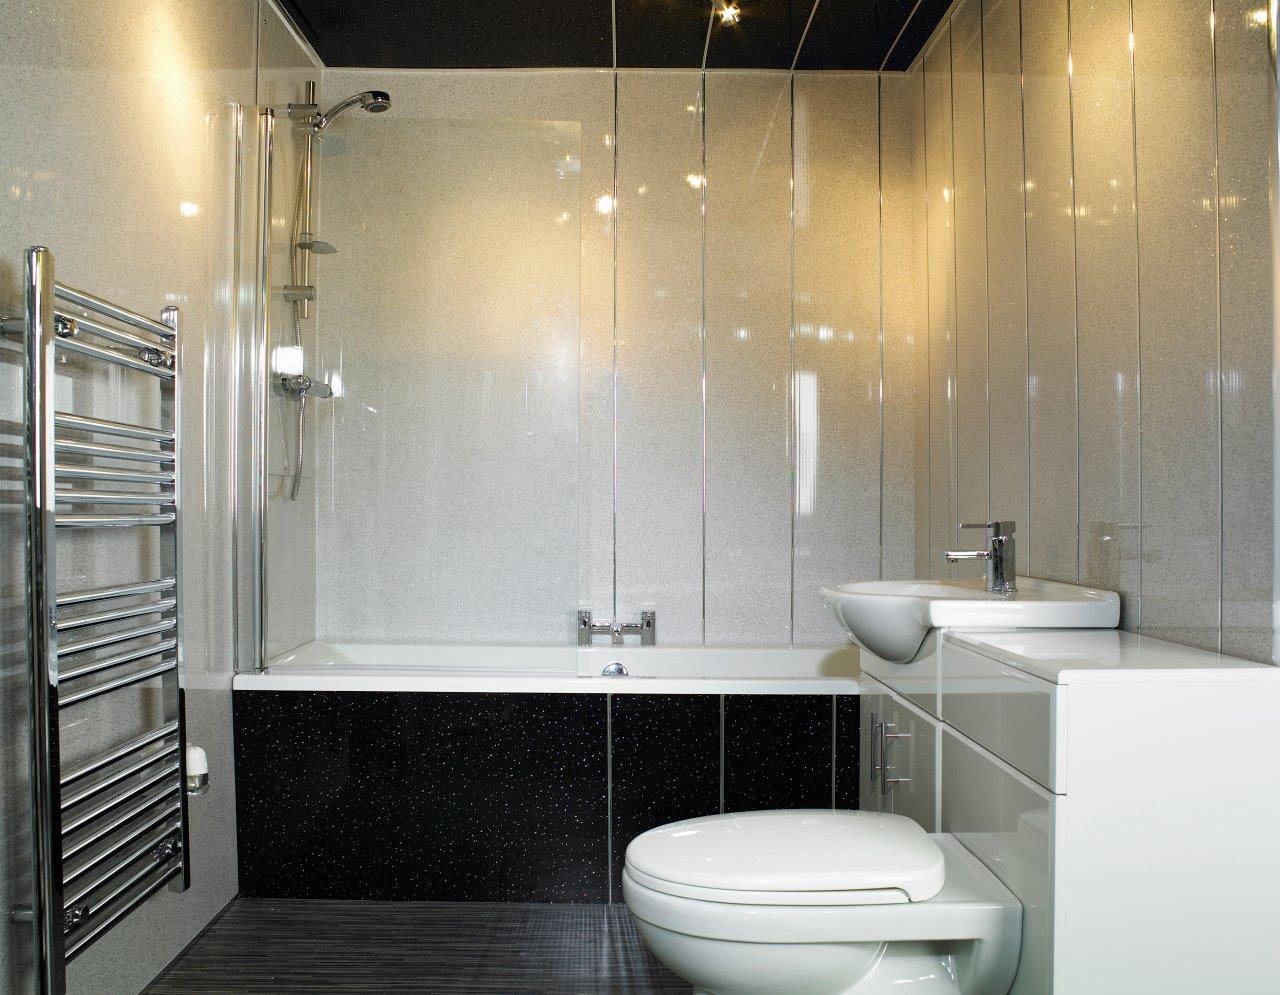 Black Sparkle Cladding Decor Cladding Direct - White sparkle bathroom cladding